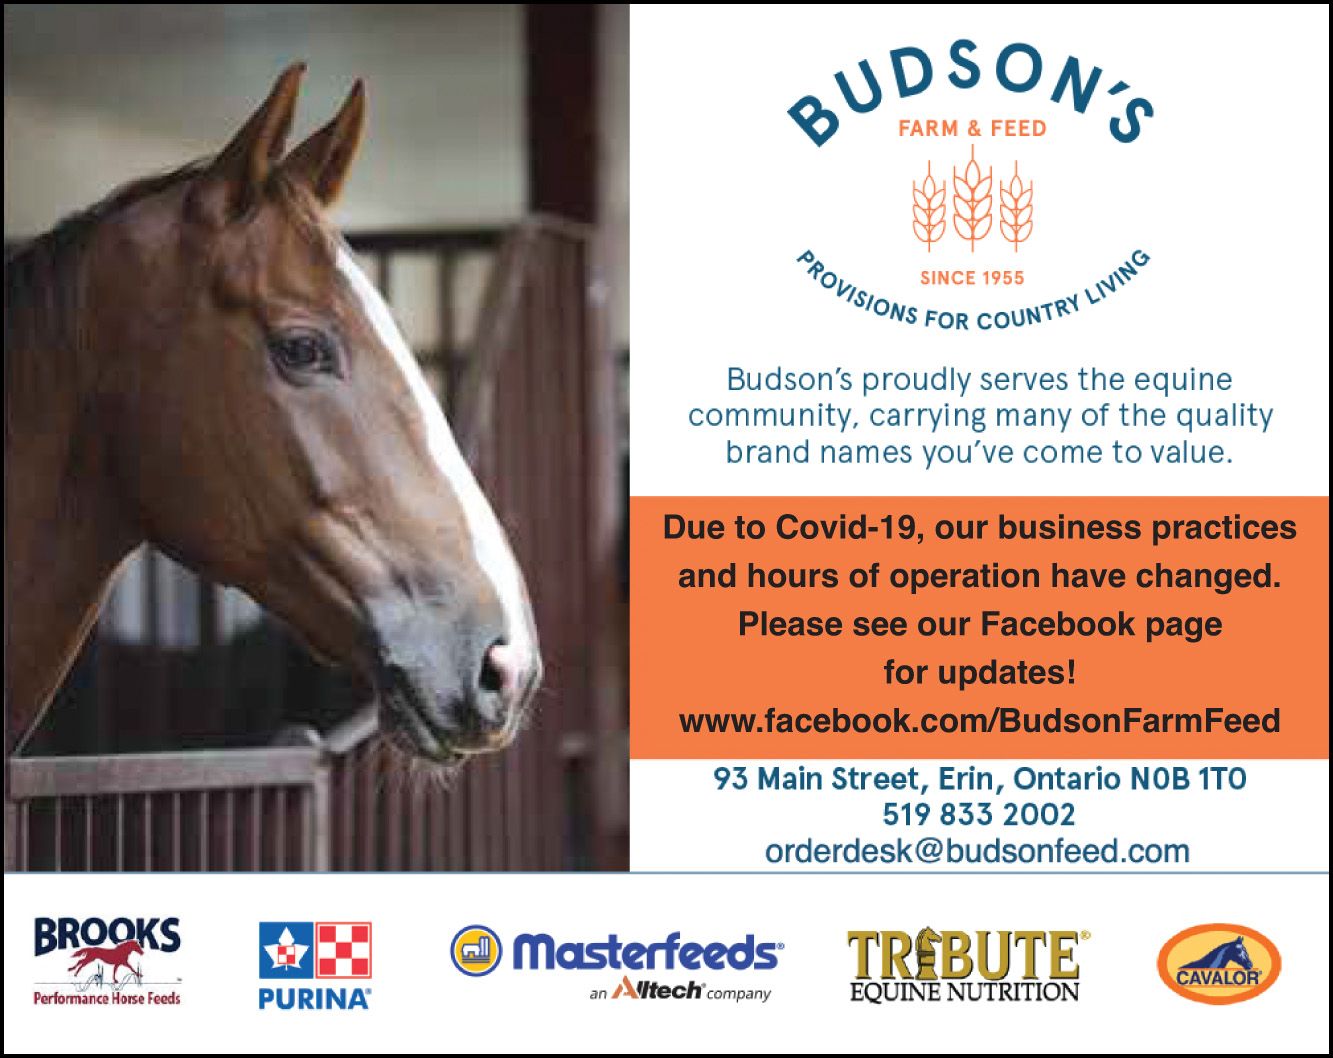 Budson's Feeds